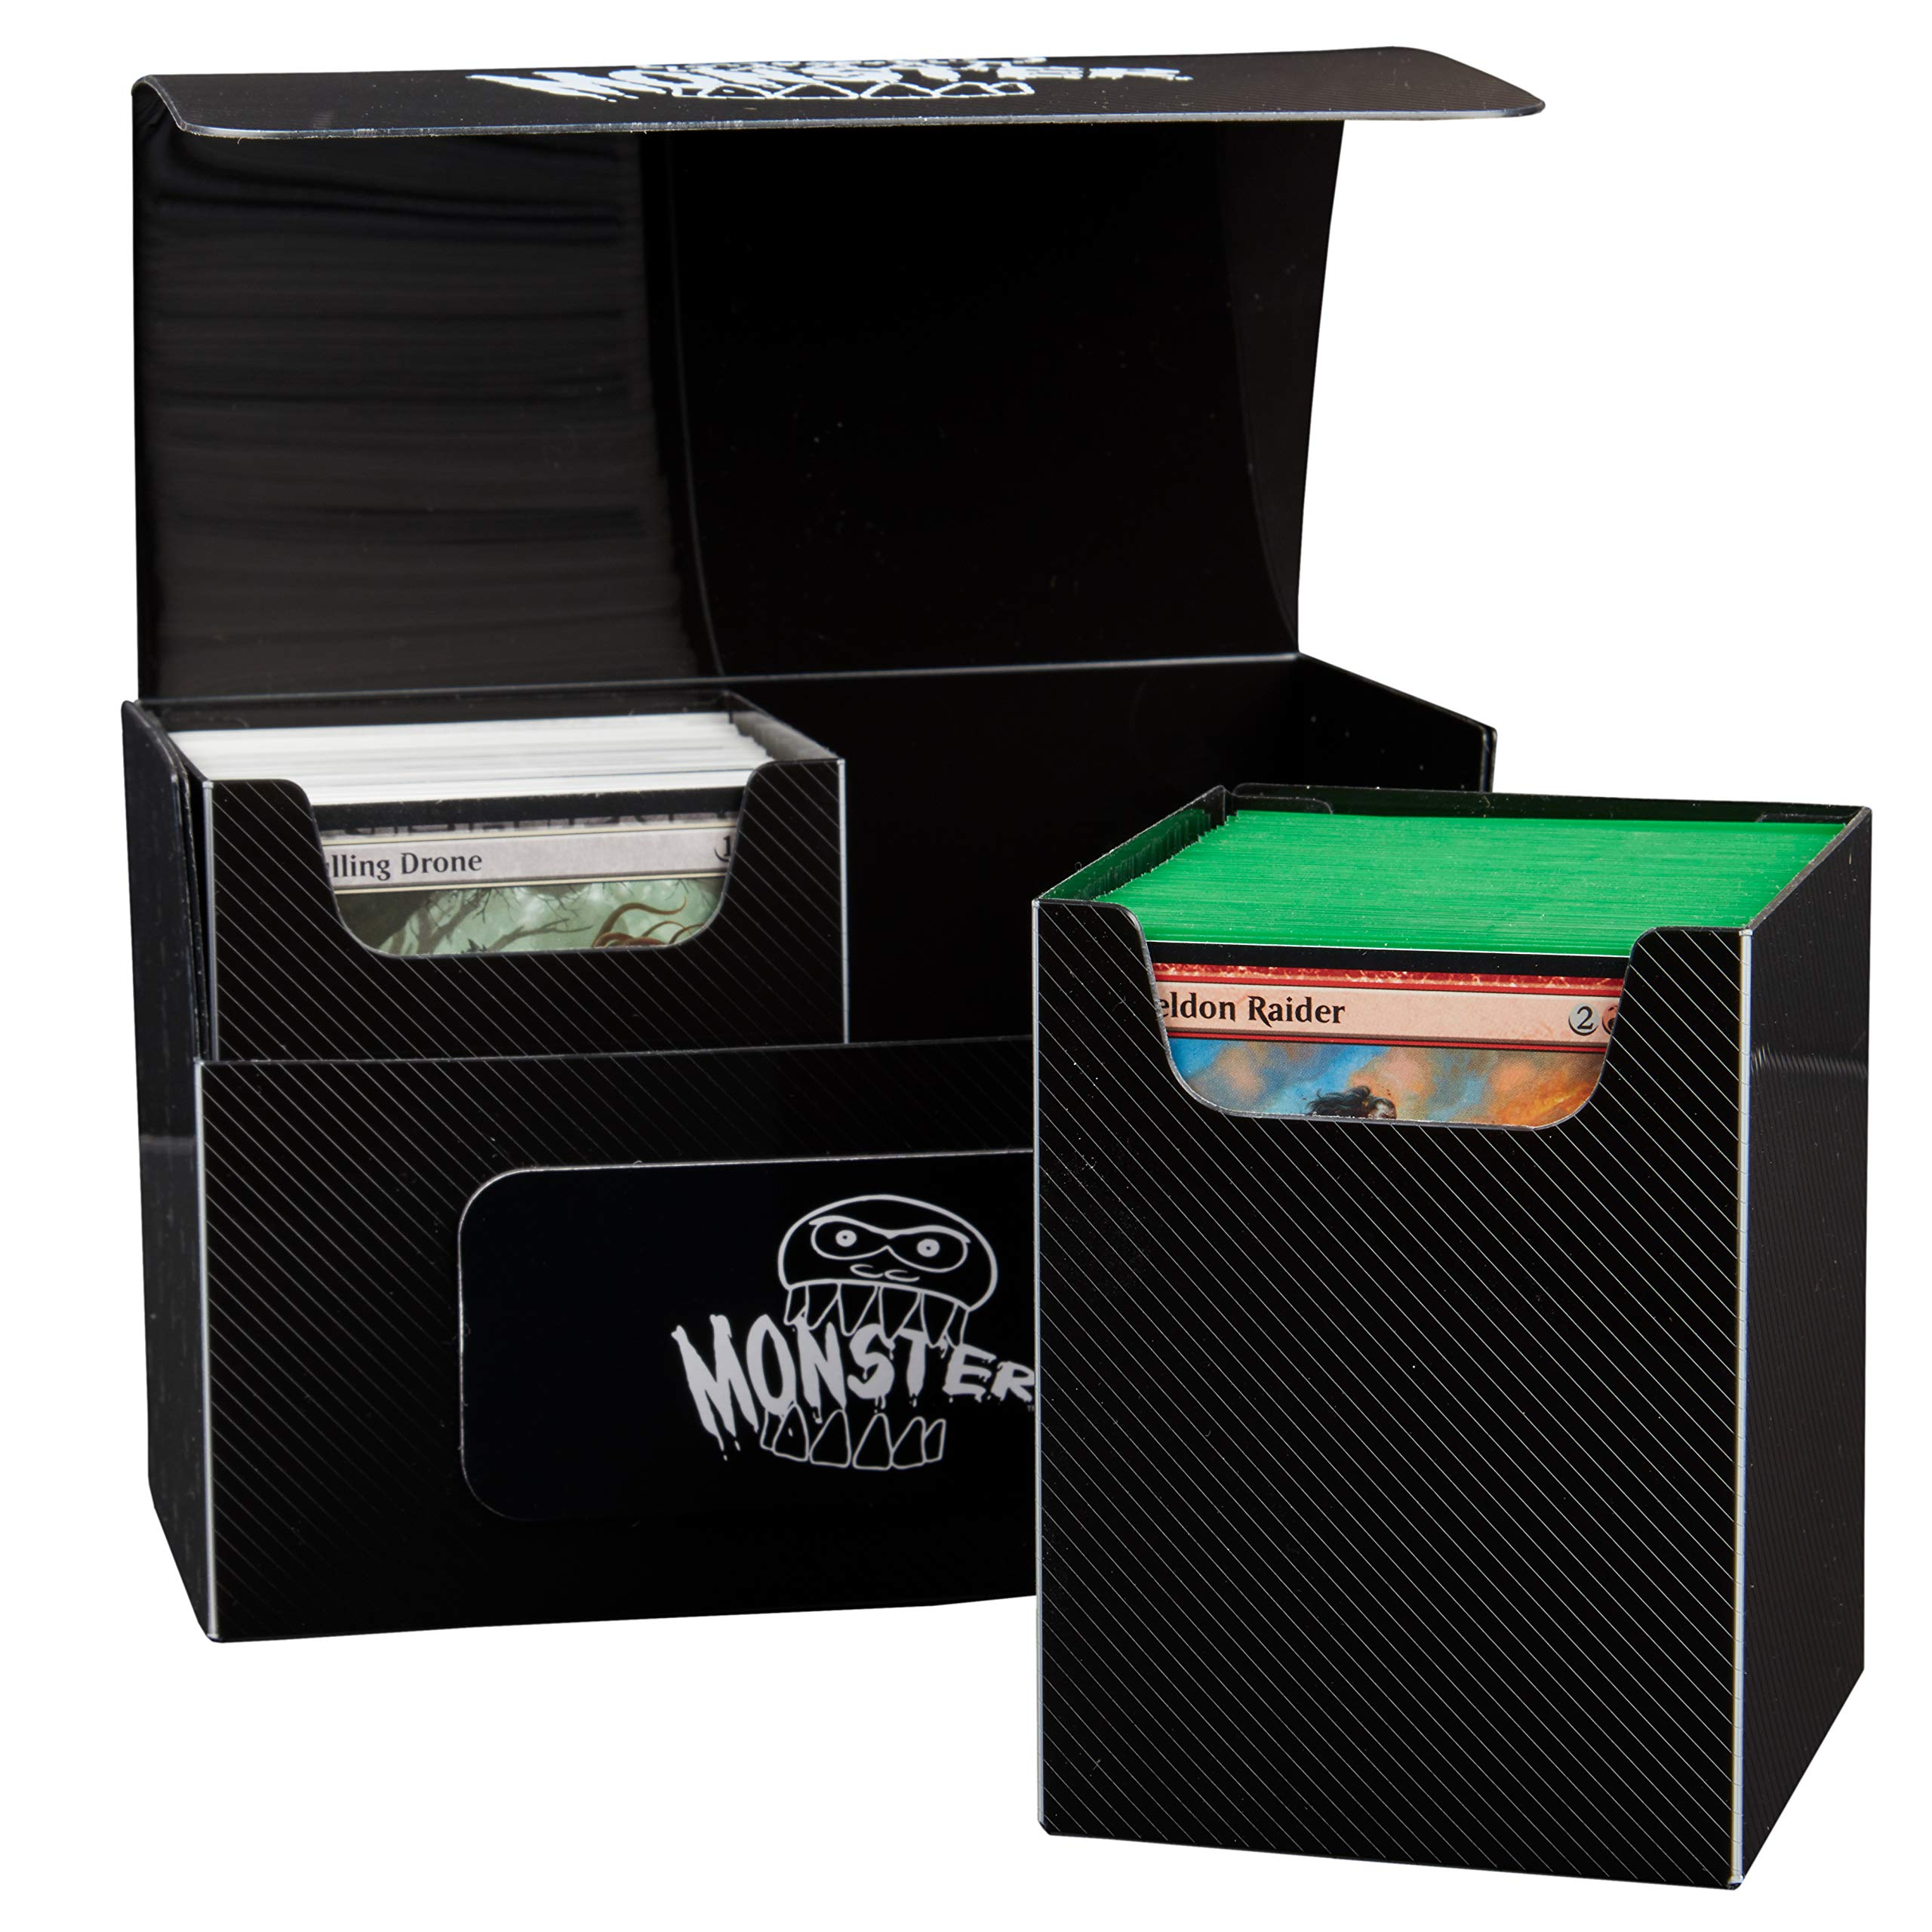 Extra Large Magnetic Deck Box - MTG Commander Big Case - Two XL Removable Compartments Hold 200 Double Sleeved Magic Game Cards by Monster